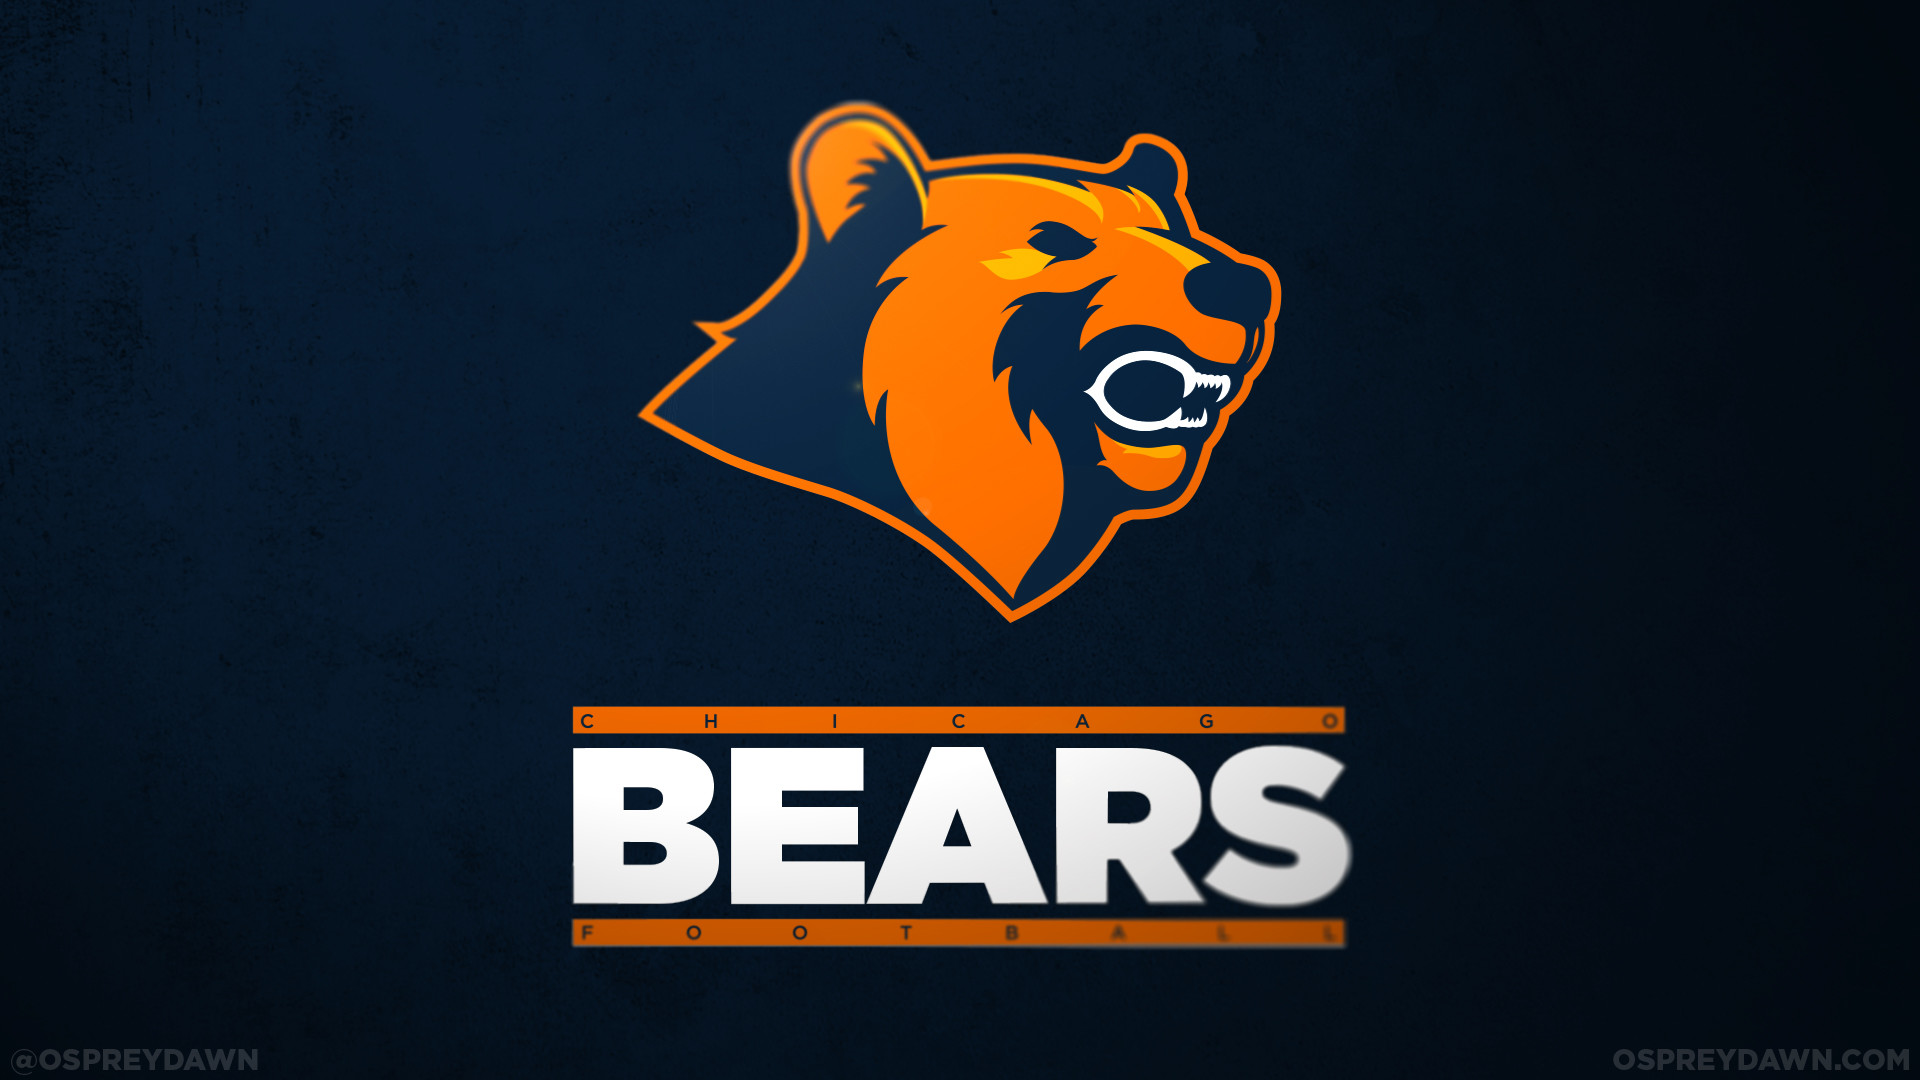 Clip Arts Related To : SEP 13 – Opening Day – Chicago Bears vs Green Bay  Packers – Madd